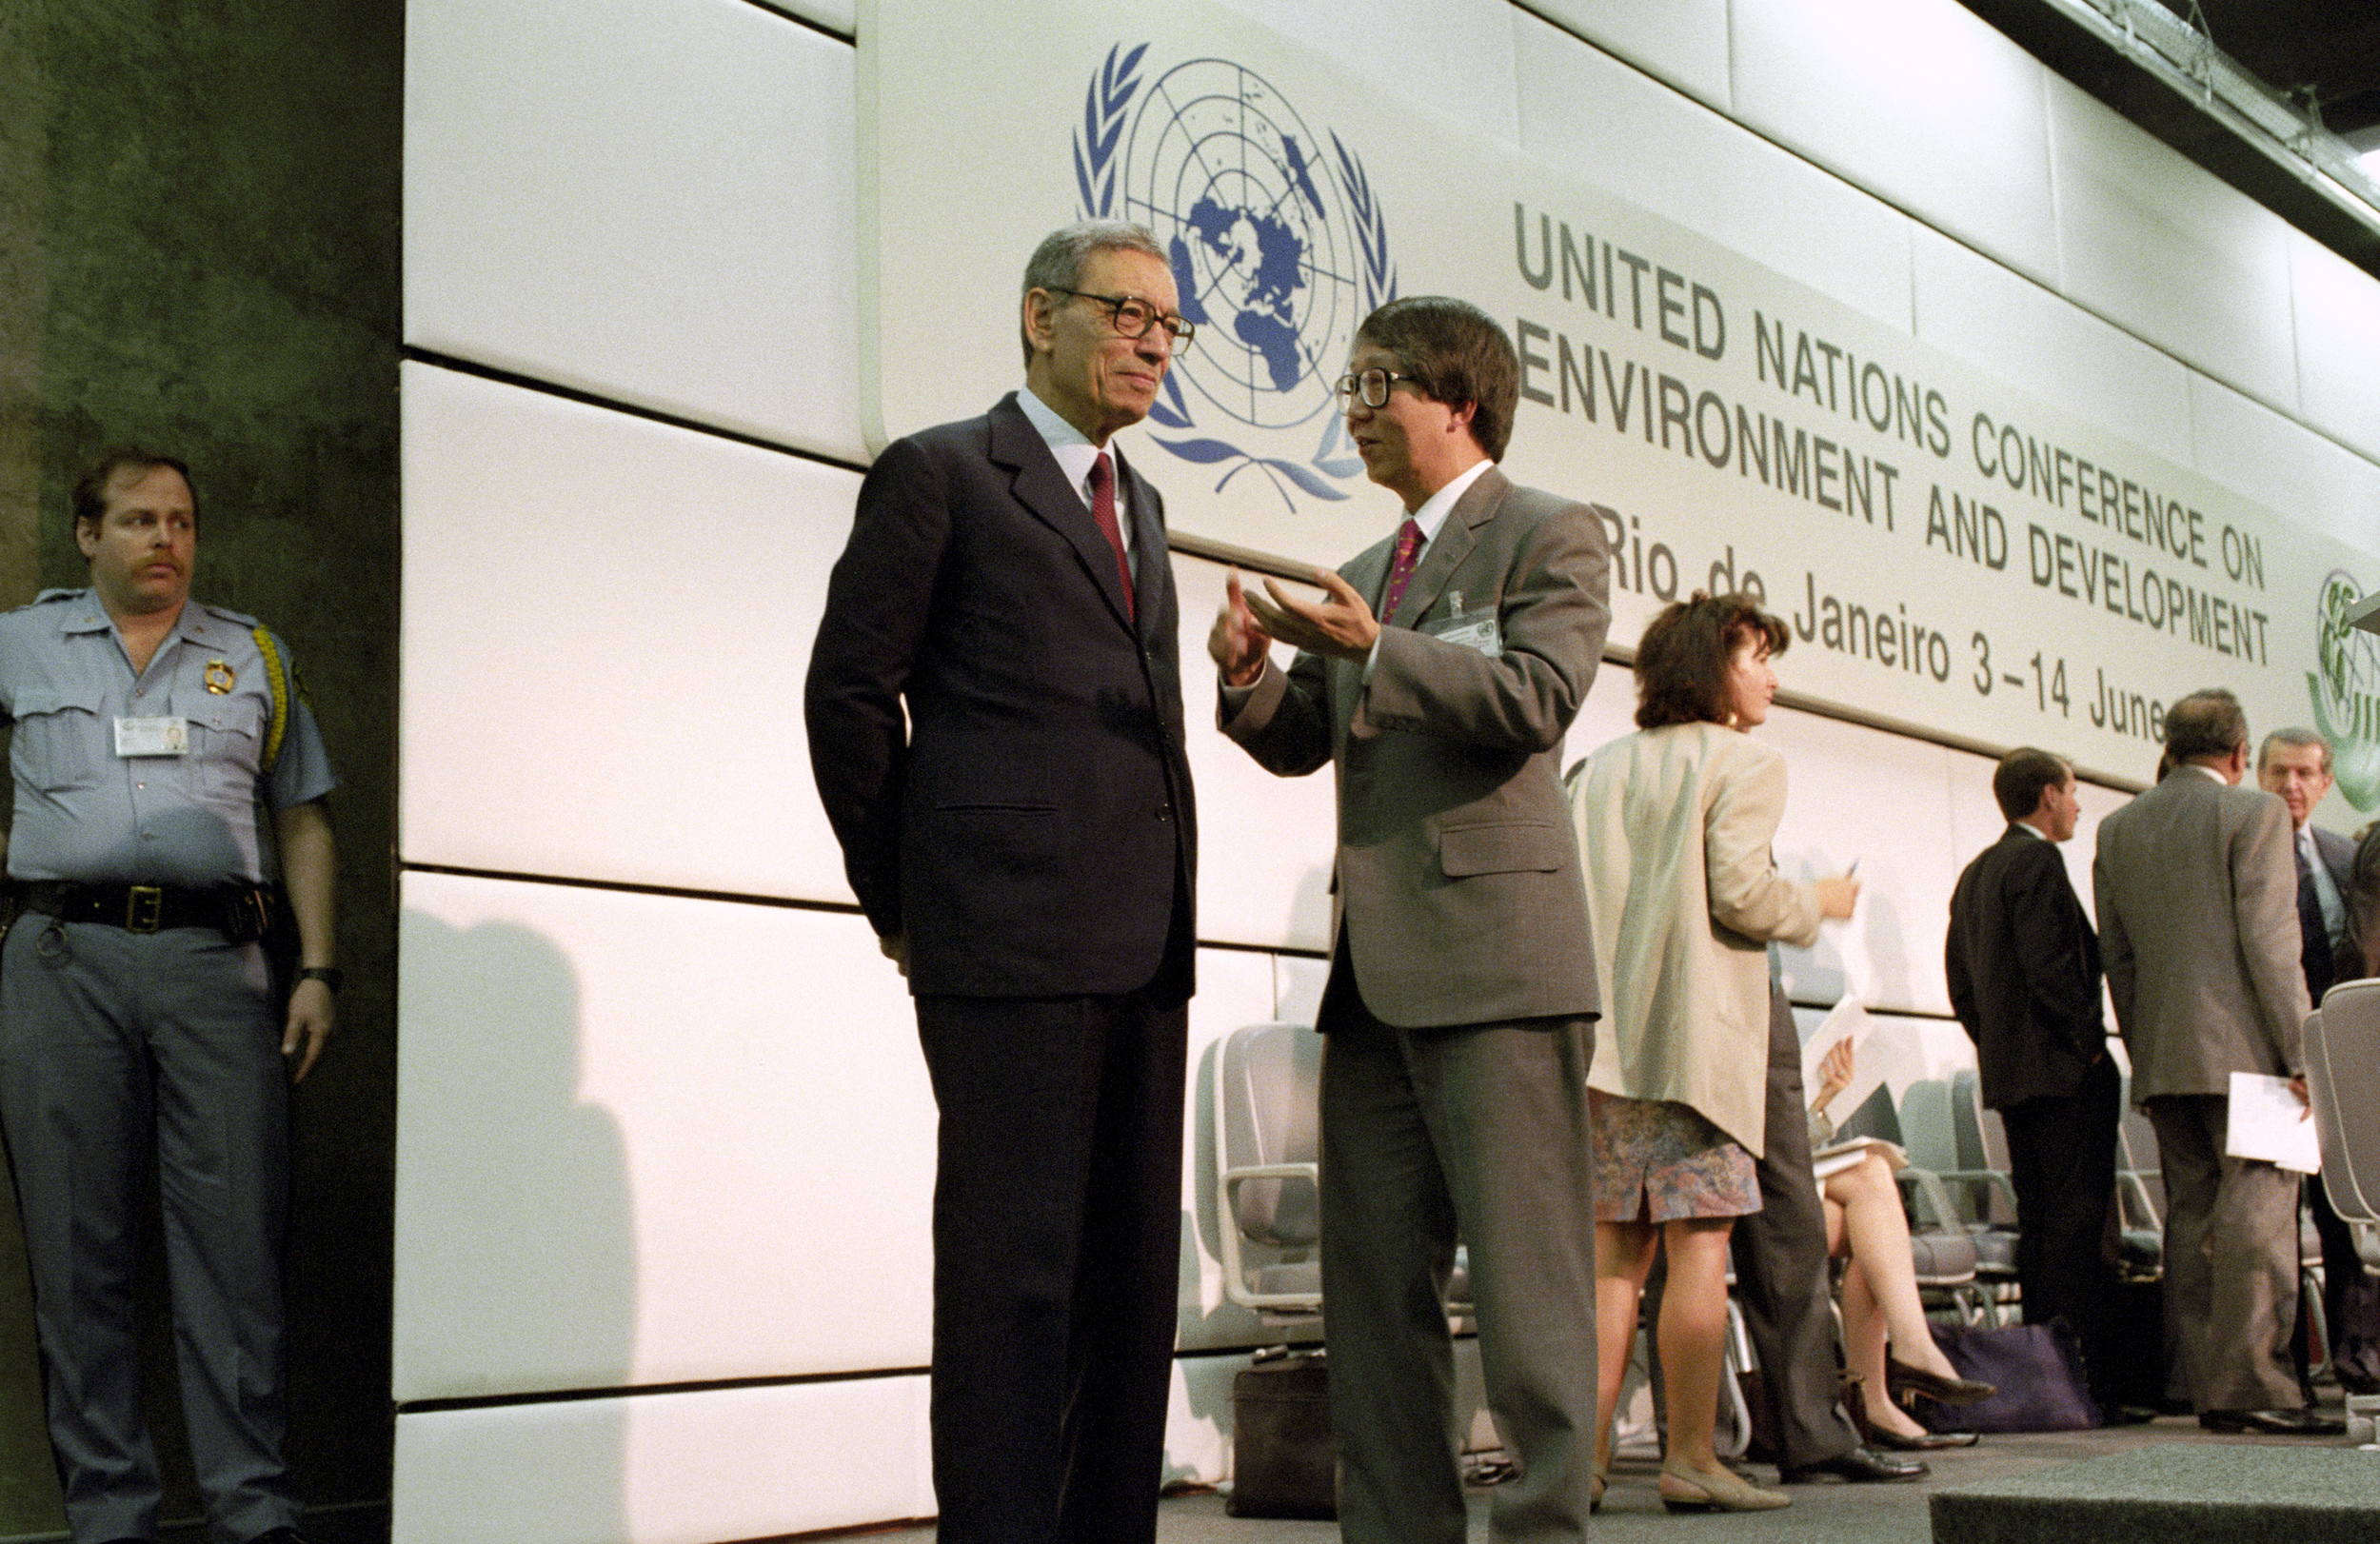 Secretary-general boutros boutros-ghali and chairman tommy koh at the historic earth summit in 1992.   CREDIT: UN PHOTO,  HTTP://WWW.UNMULTIMEDIA.ORG/PHOTO/GALLERY.JSP?QUERY=BOUTROS-GHALI .